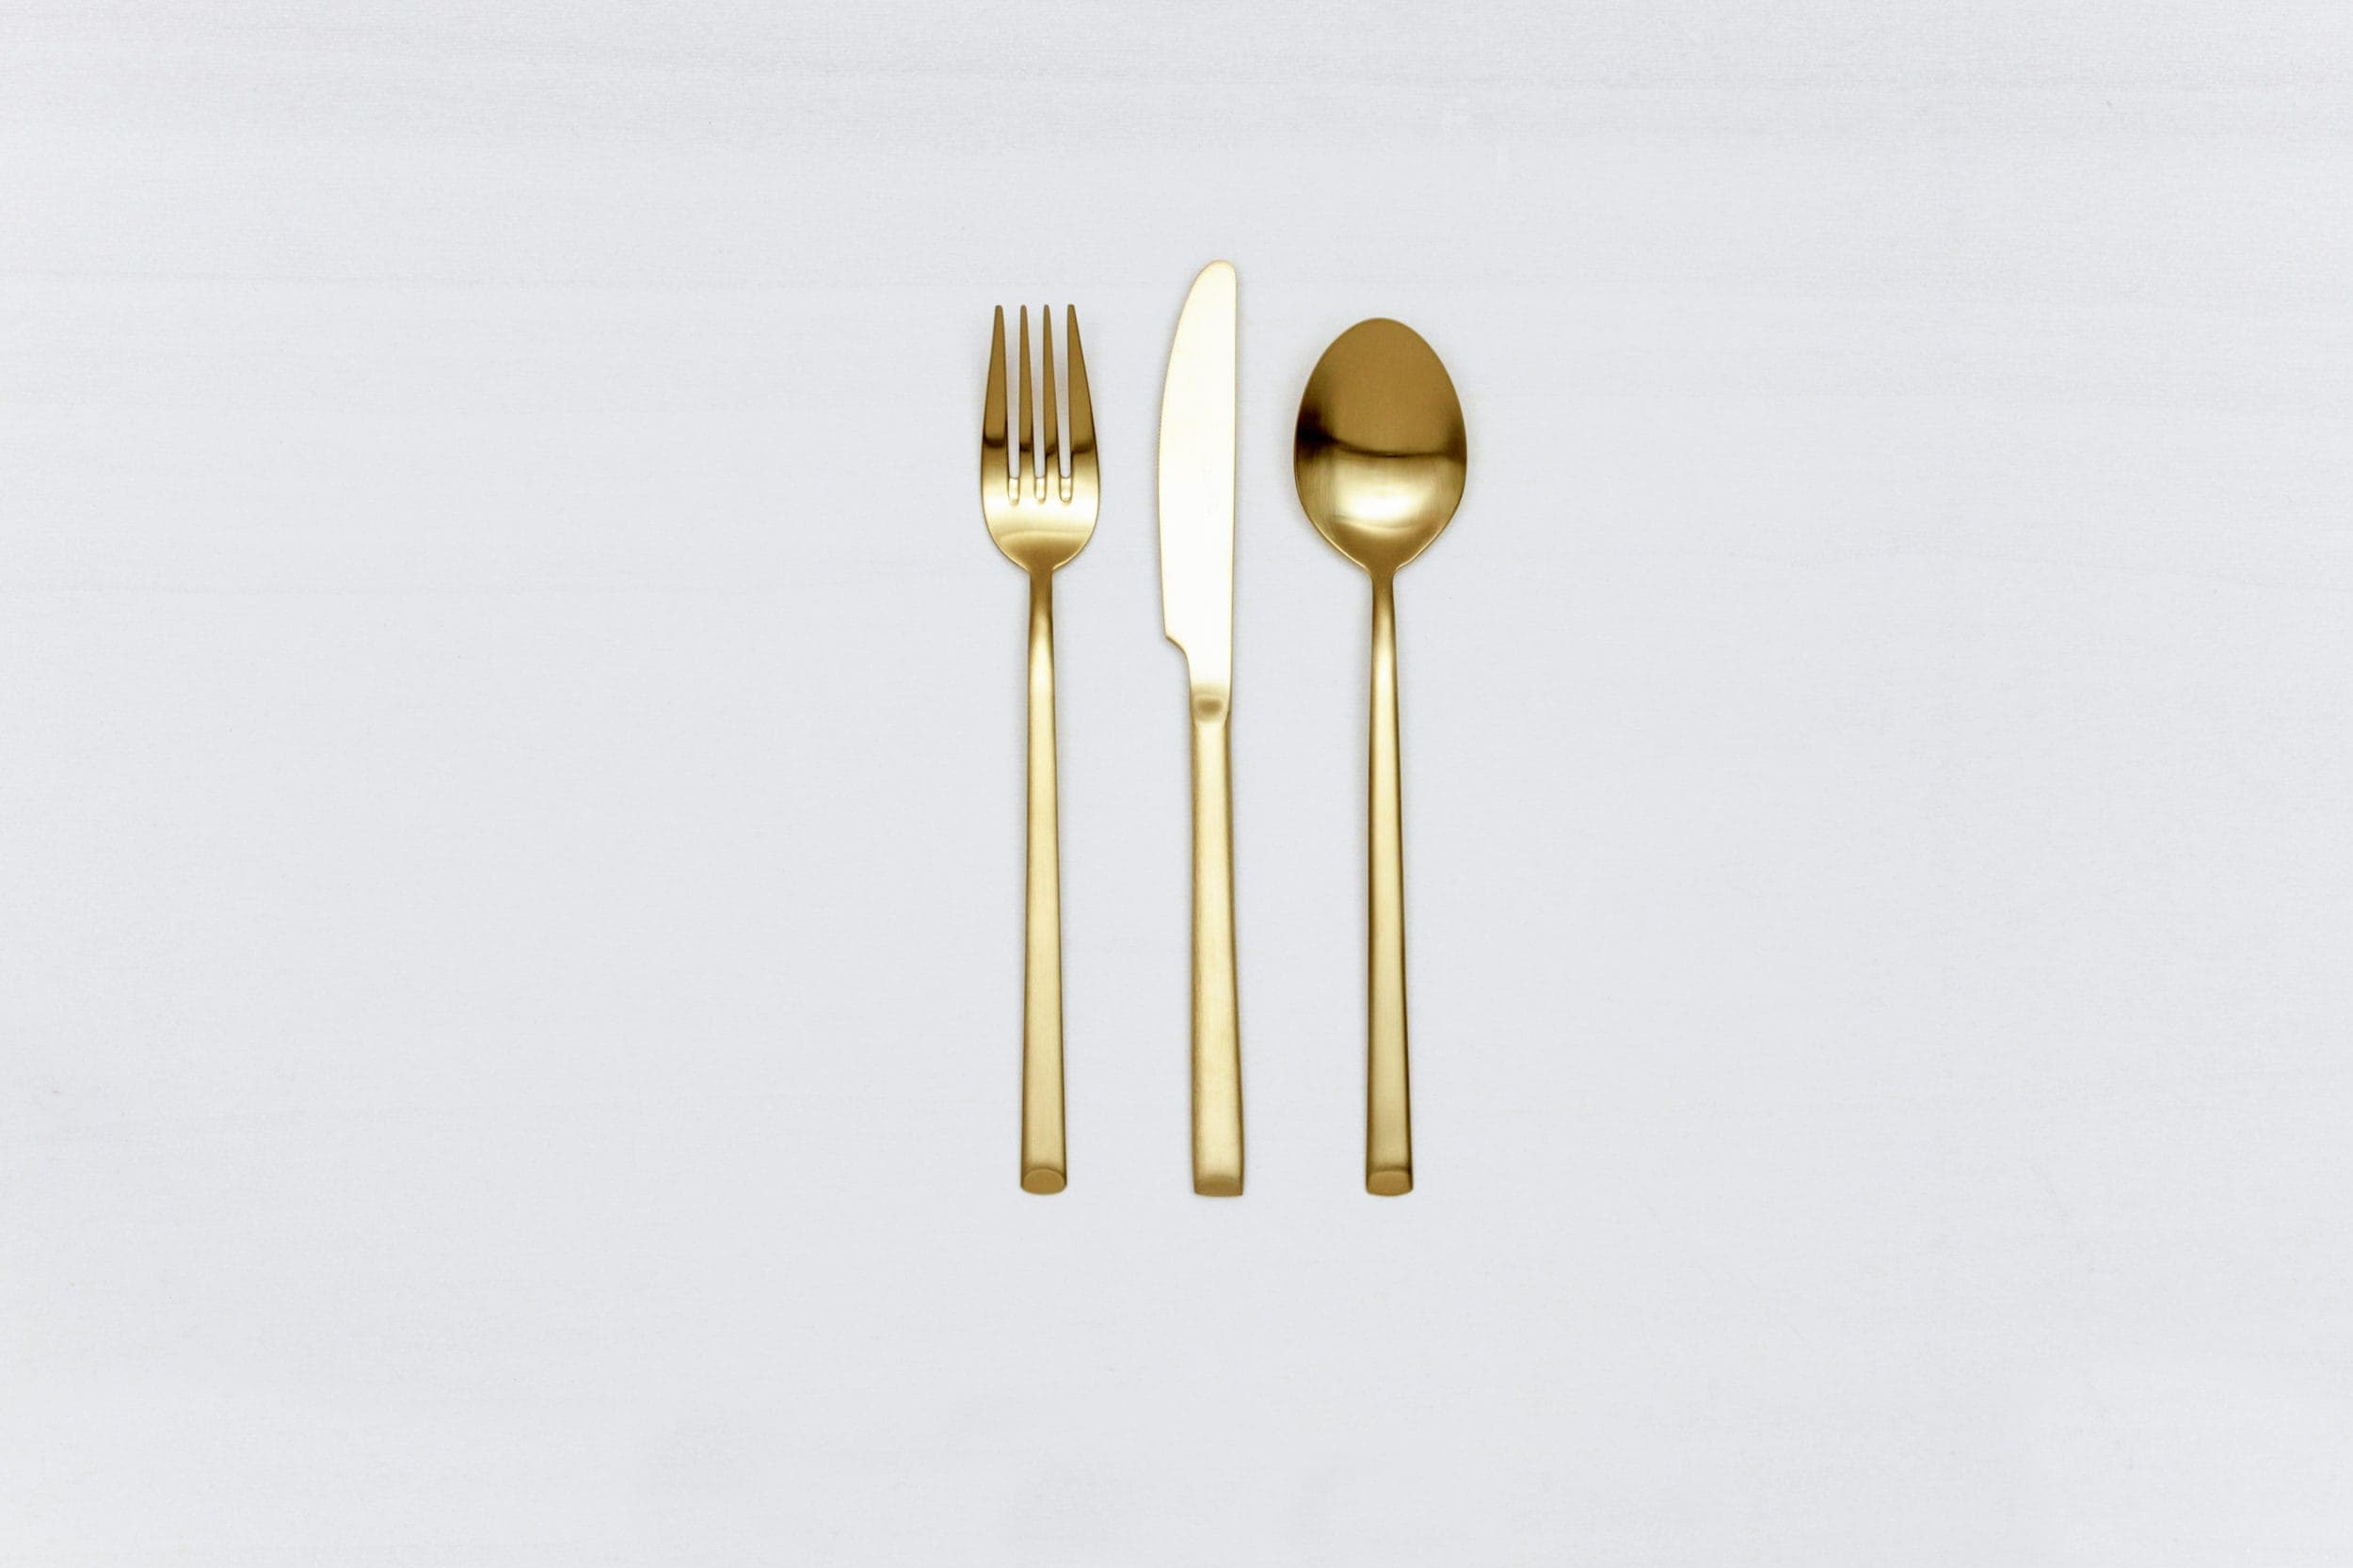 Dinner Fork Ines Cutlery Gold Matt | Matte golden PVD-coated stainless steel fork in a timeless design and with a nice feel. Can be used for the starter or main course.